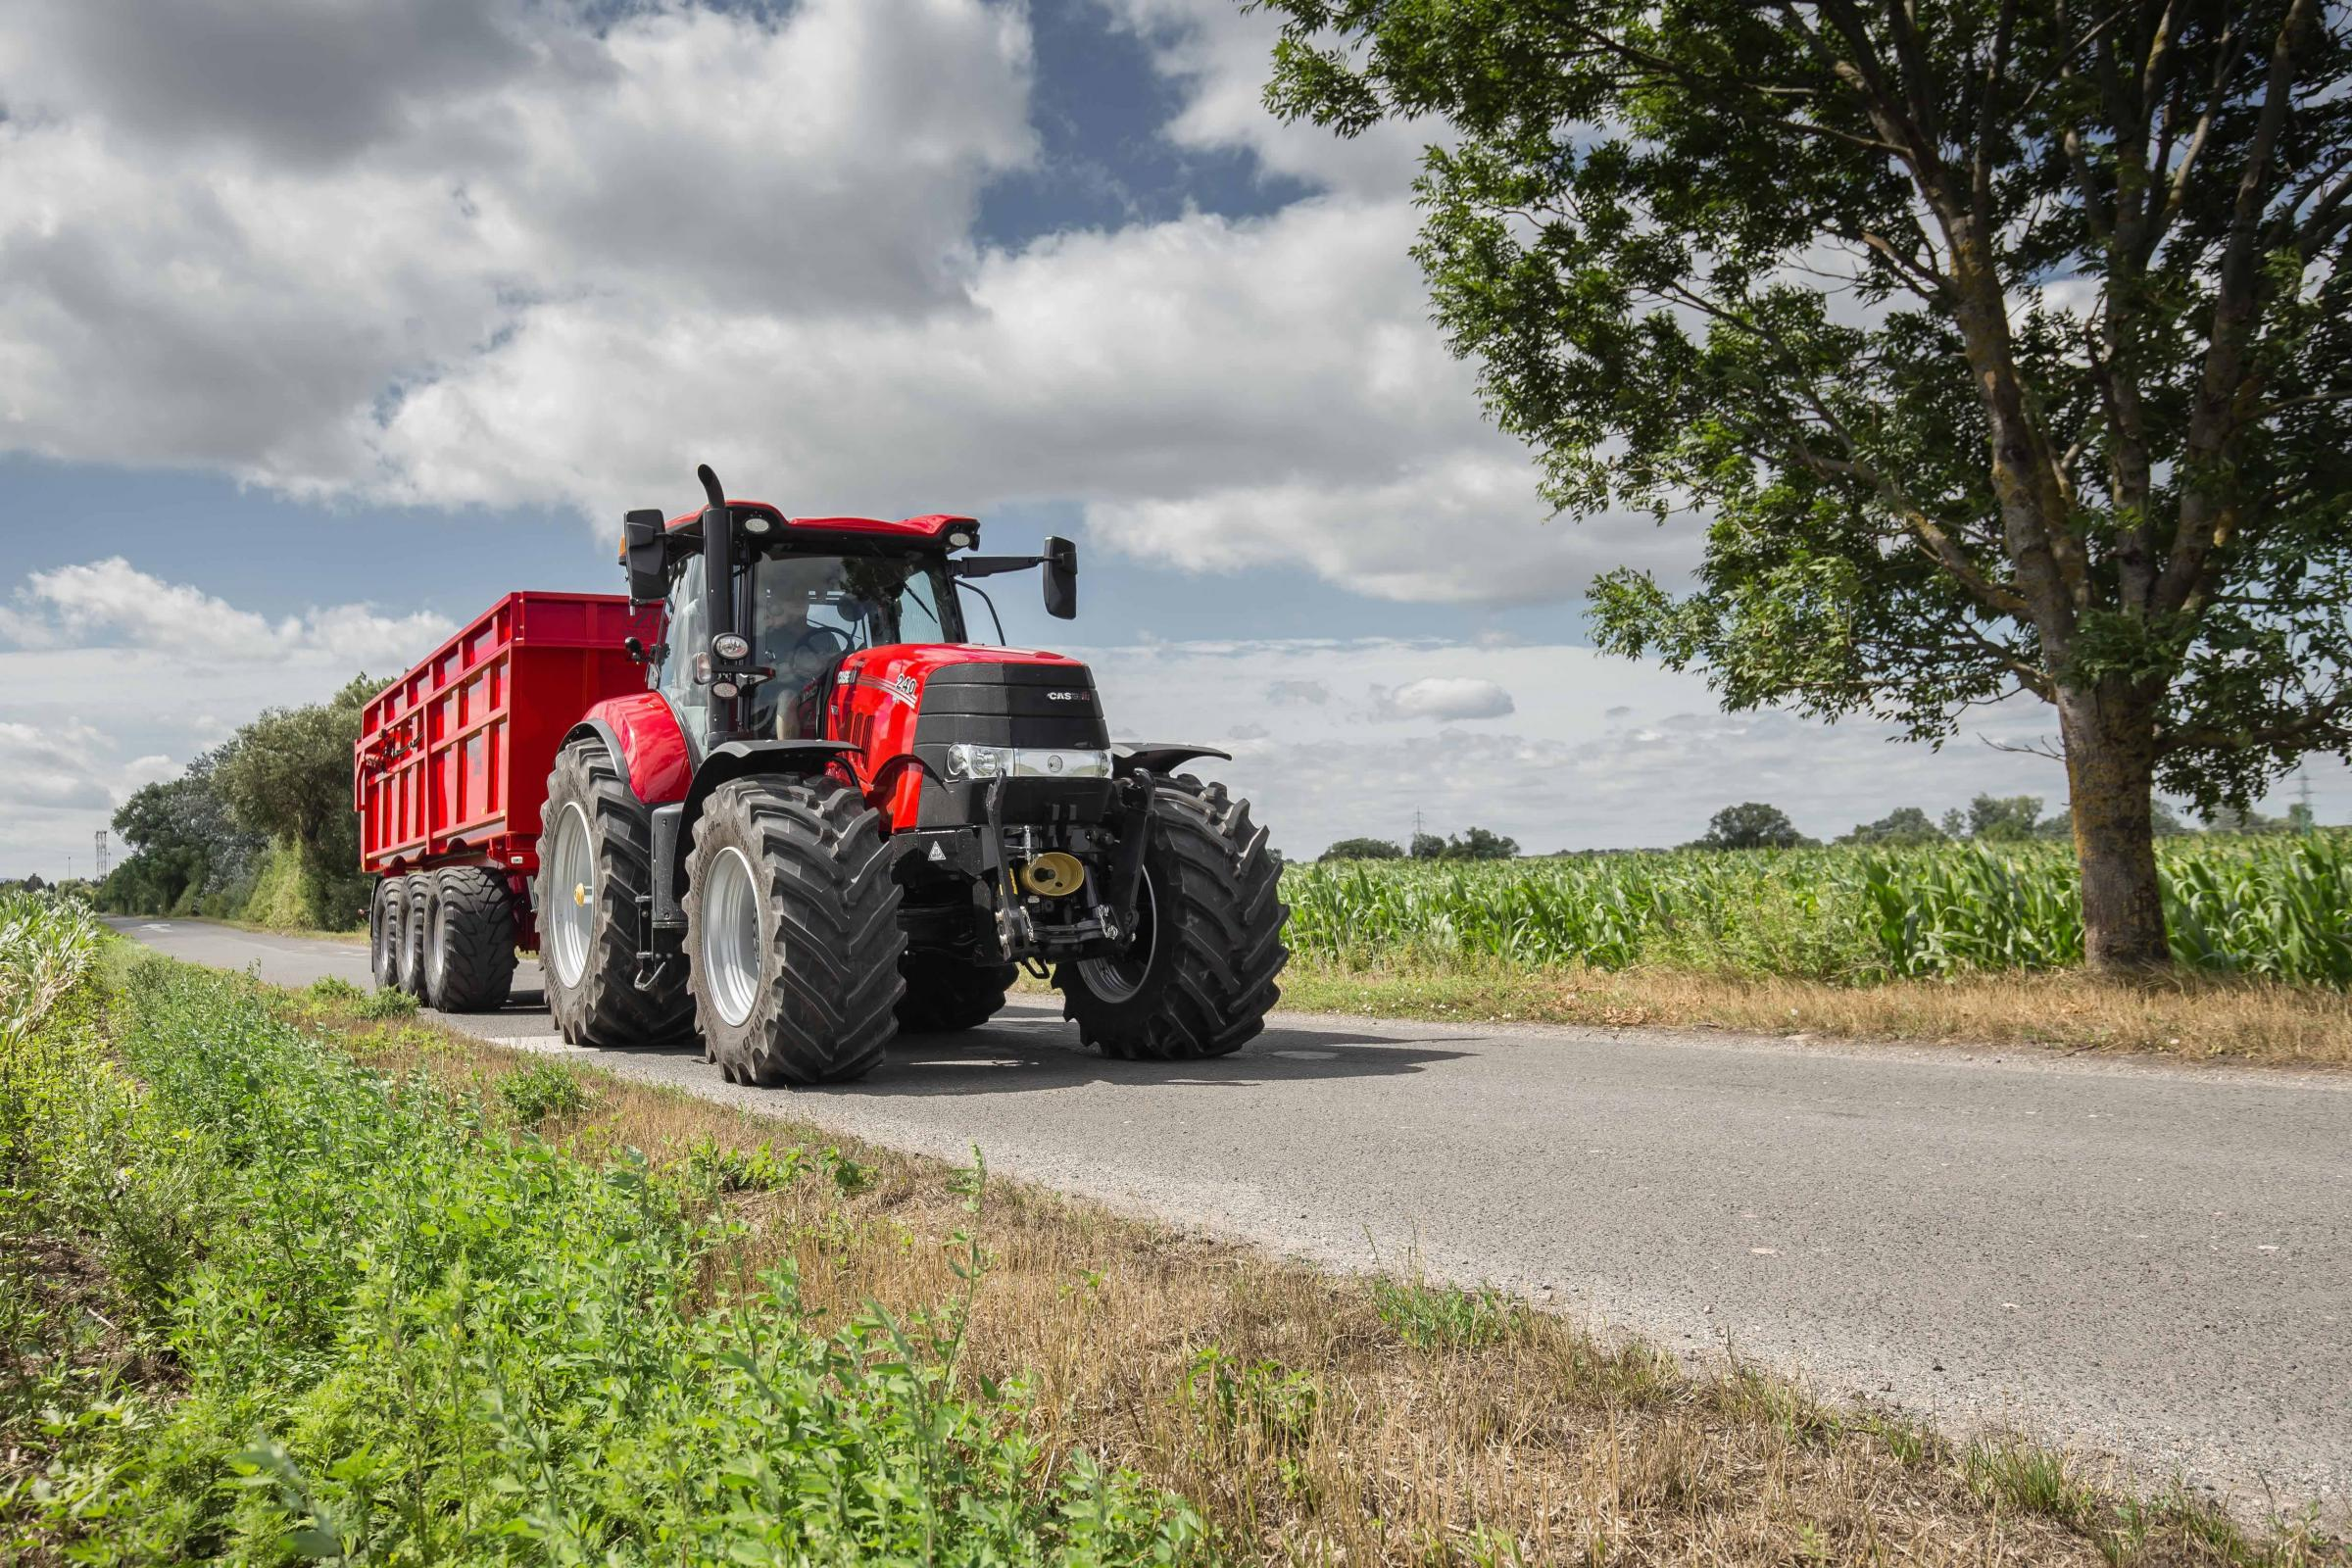 The new braking system on Case IH Pumas will make it safer to pull large towed implements in both field and road